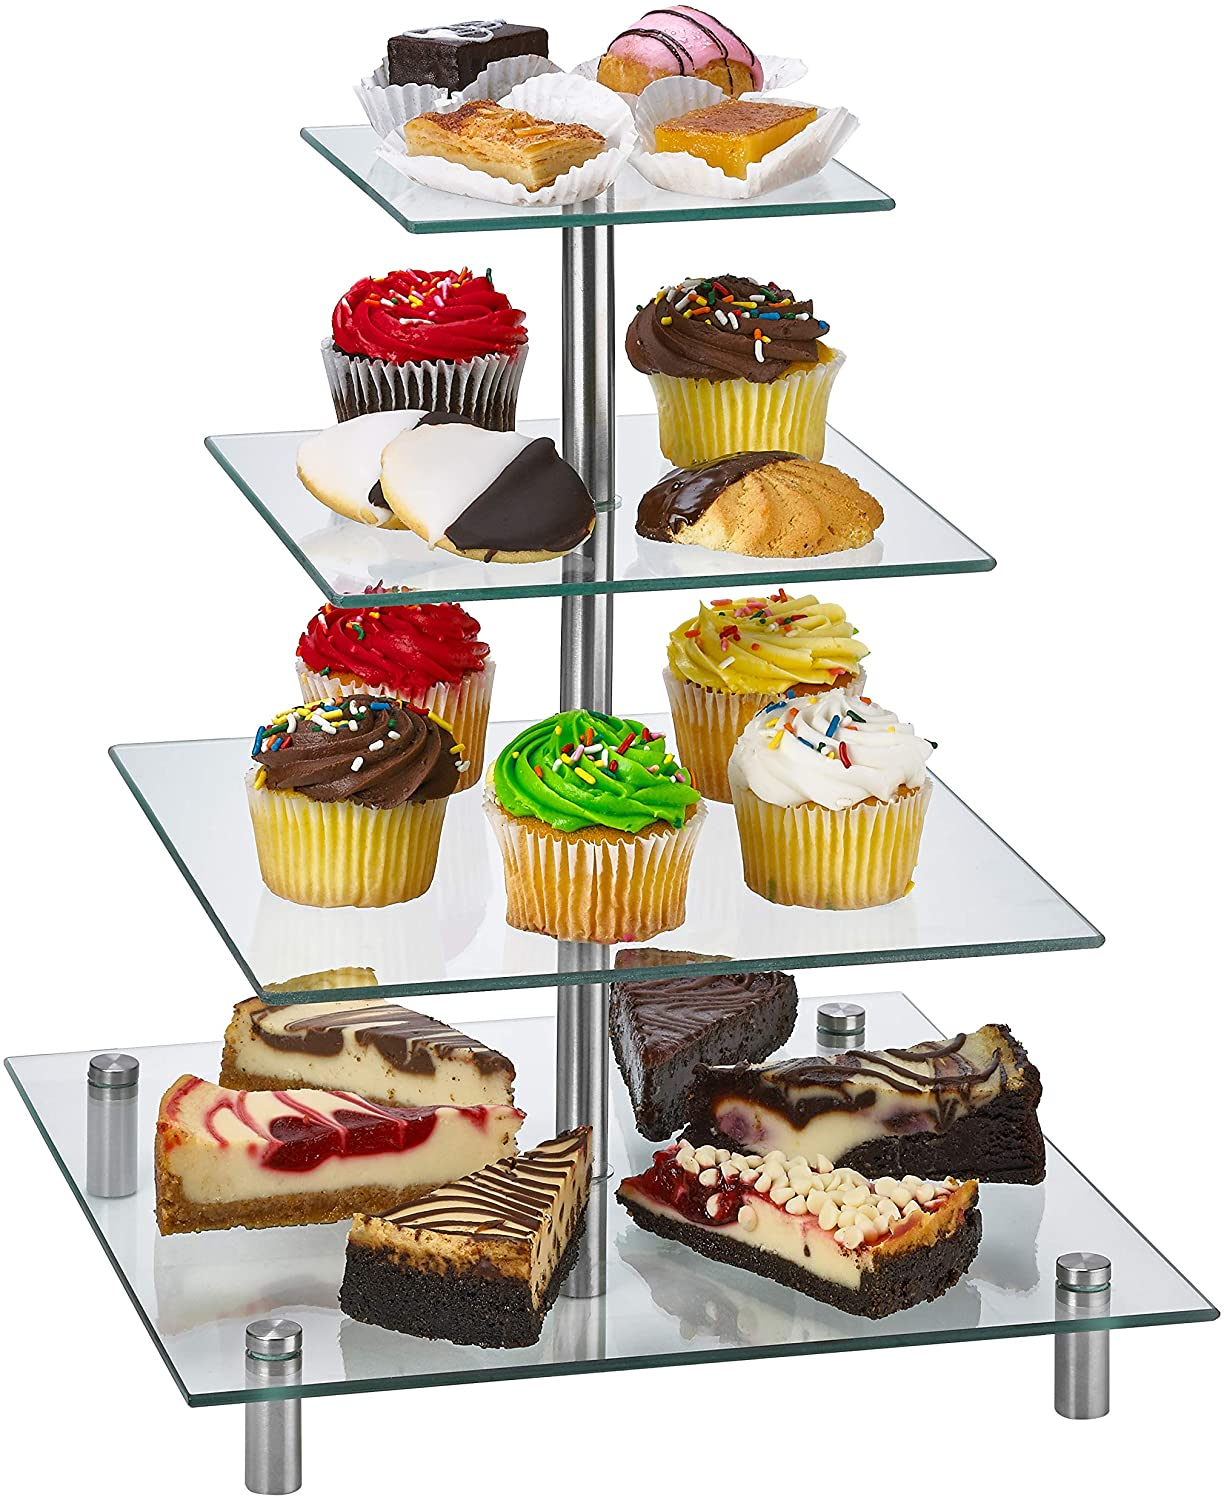 ZAFUU 4 Tier Square Tempered Glass Cupcake Stand | Modern Cake Stand, Dessert Tower, Afternoon Tea Stand for Cakes, Pastries, Sandwiches